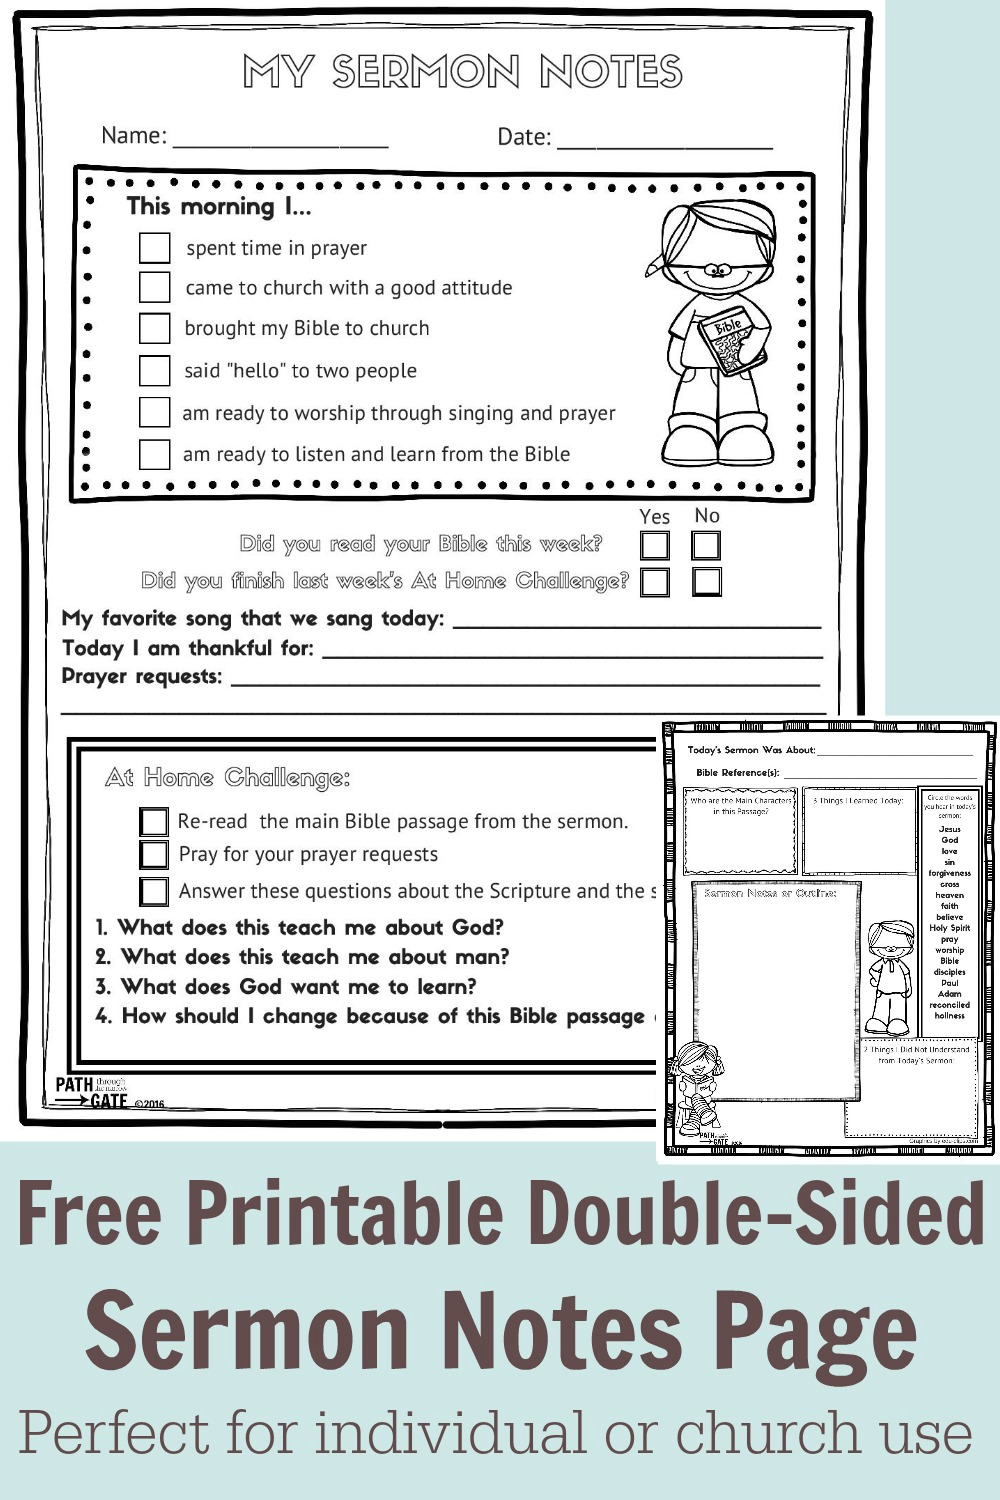 FREE Sermon Notes Activity for Kids | Free Homeschool Deals ©